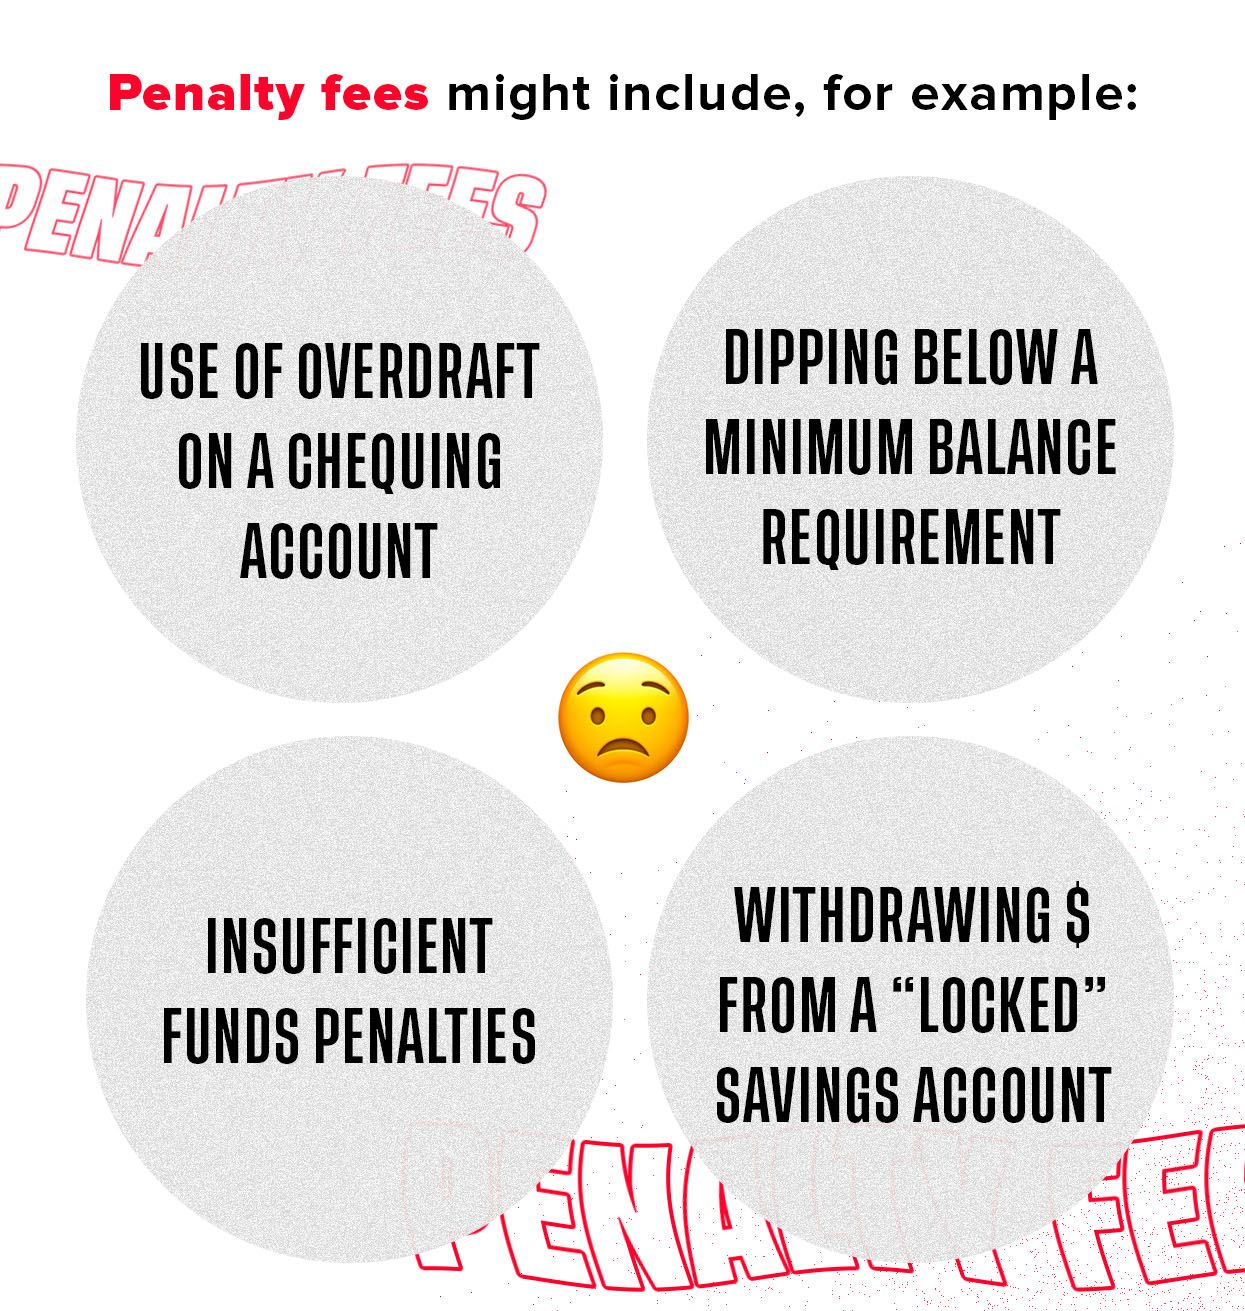 Graphic with examples of penalty fees, such as: 1. Use of overdraft on a chequing account. 2. Insufficient funds penalties. 3. Dipping below a minimum balance requirement. 4. Withdrawing $ from a 'locked' savings account.